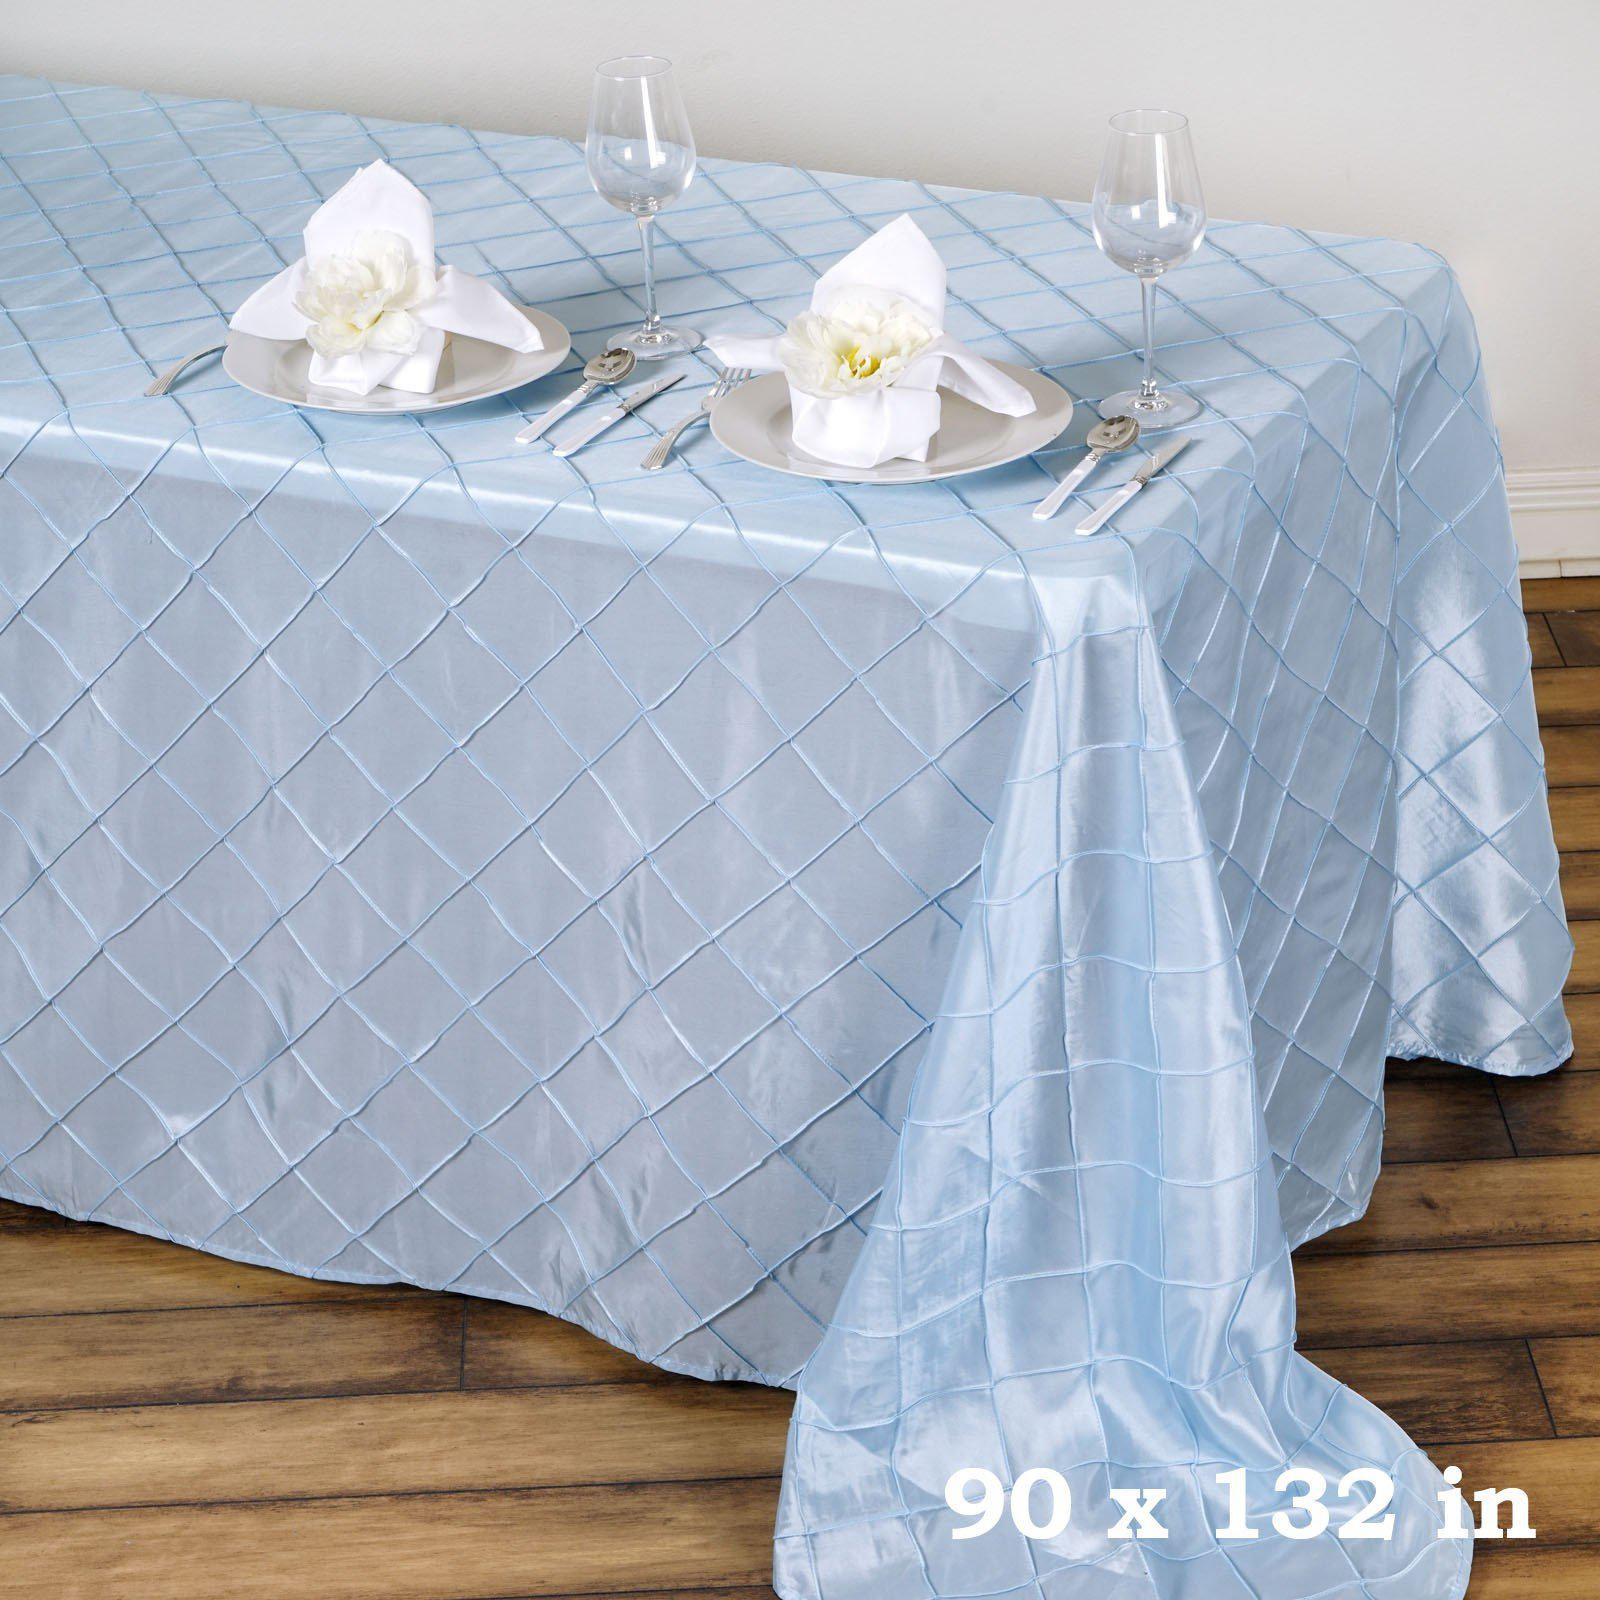 90 X 132 Tablecloth Fits What Size Table Awesome Luxury